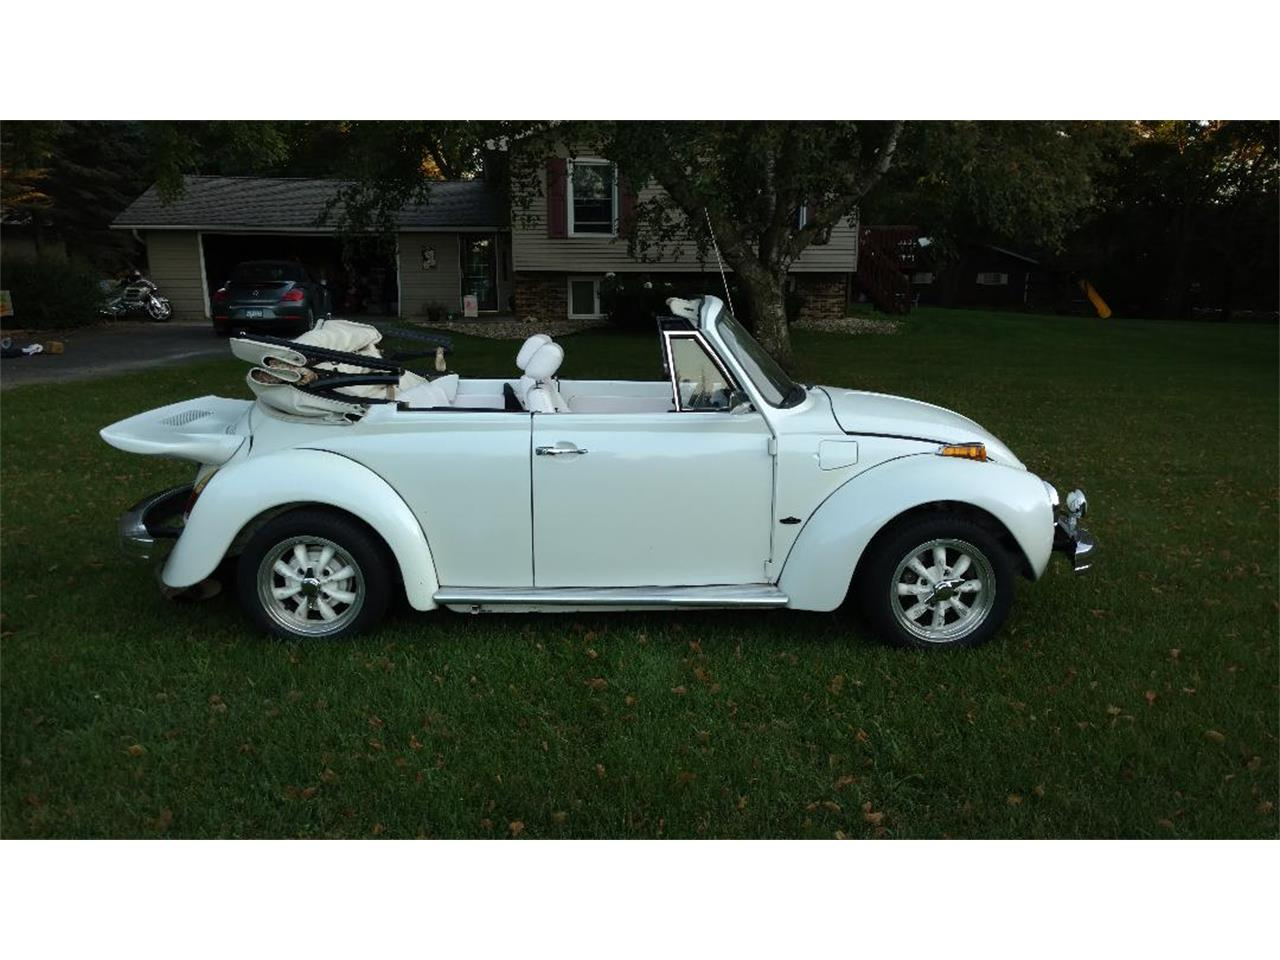 Large Picture of '76 Volkswagen Beetle located in Mantorville Minnesota - $4,000.00 Offered by a Private Seller - QUA9